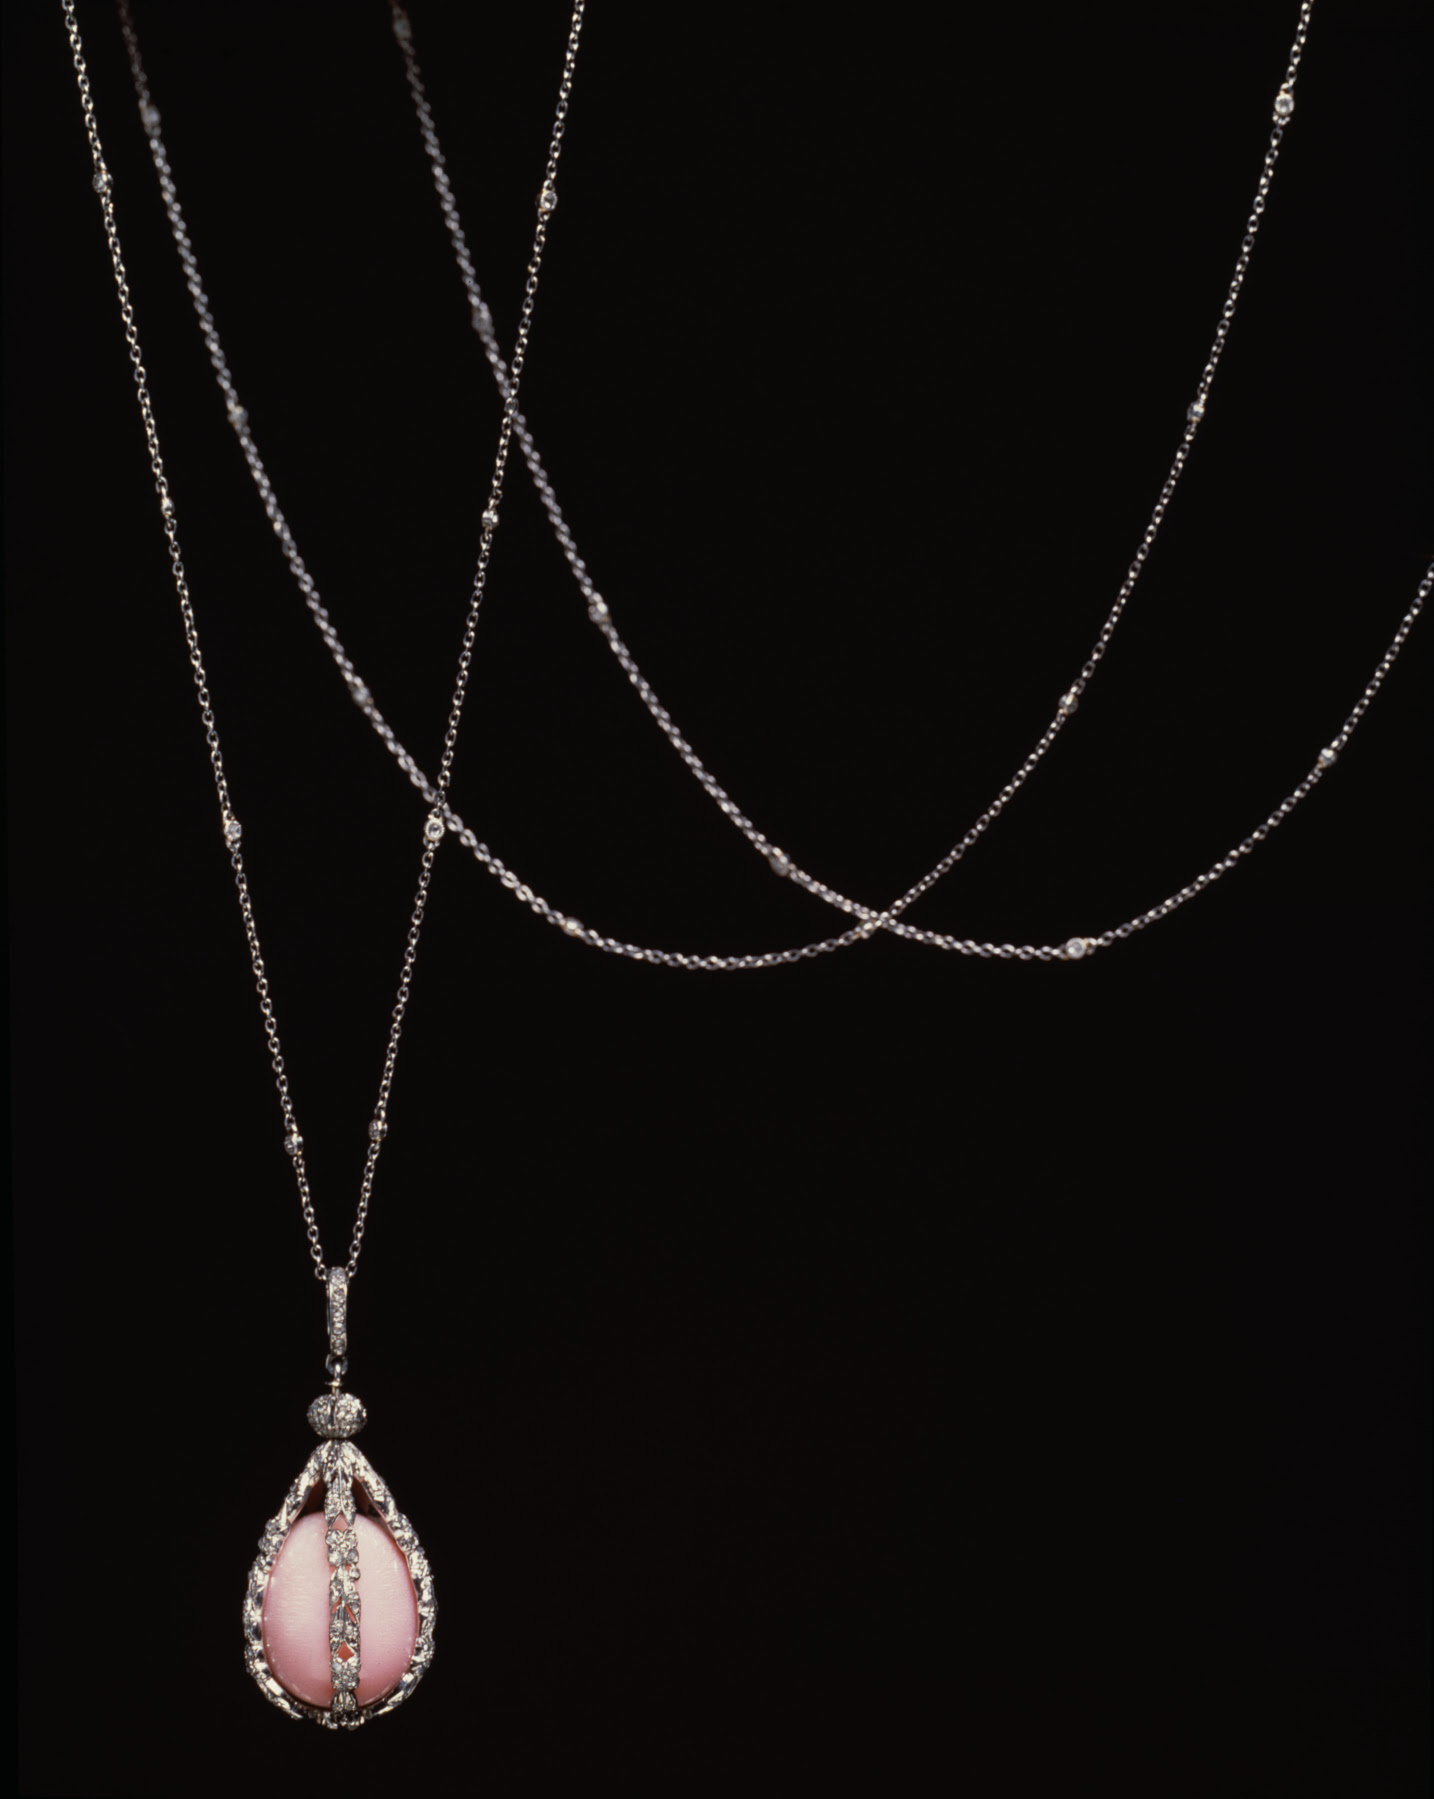 https://upload.wikimedia.org/wikipedia/commons/0/0c/Tiffany_and_Company_-_Sautoir_with_Pearl_Pendant_-_Walters_572034.jpg